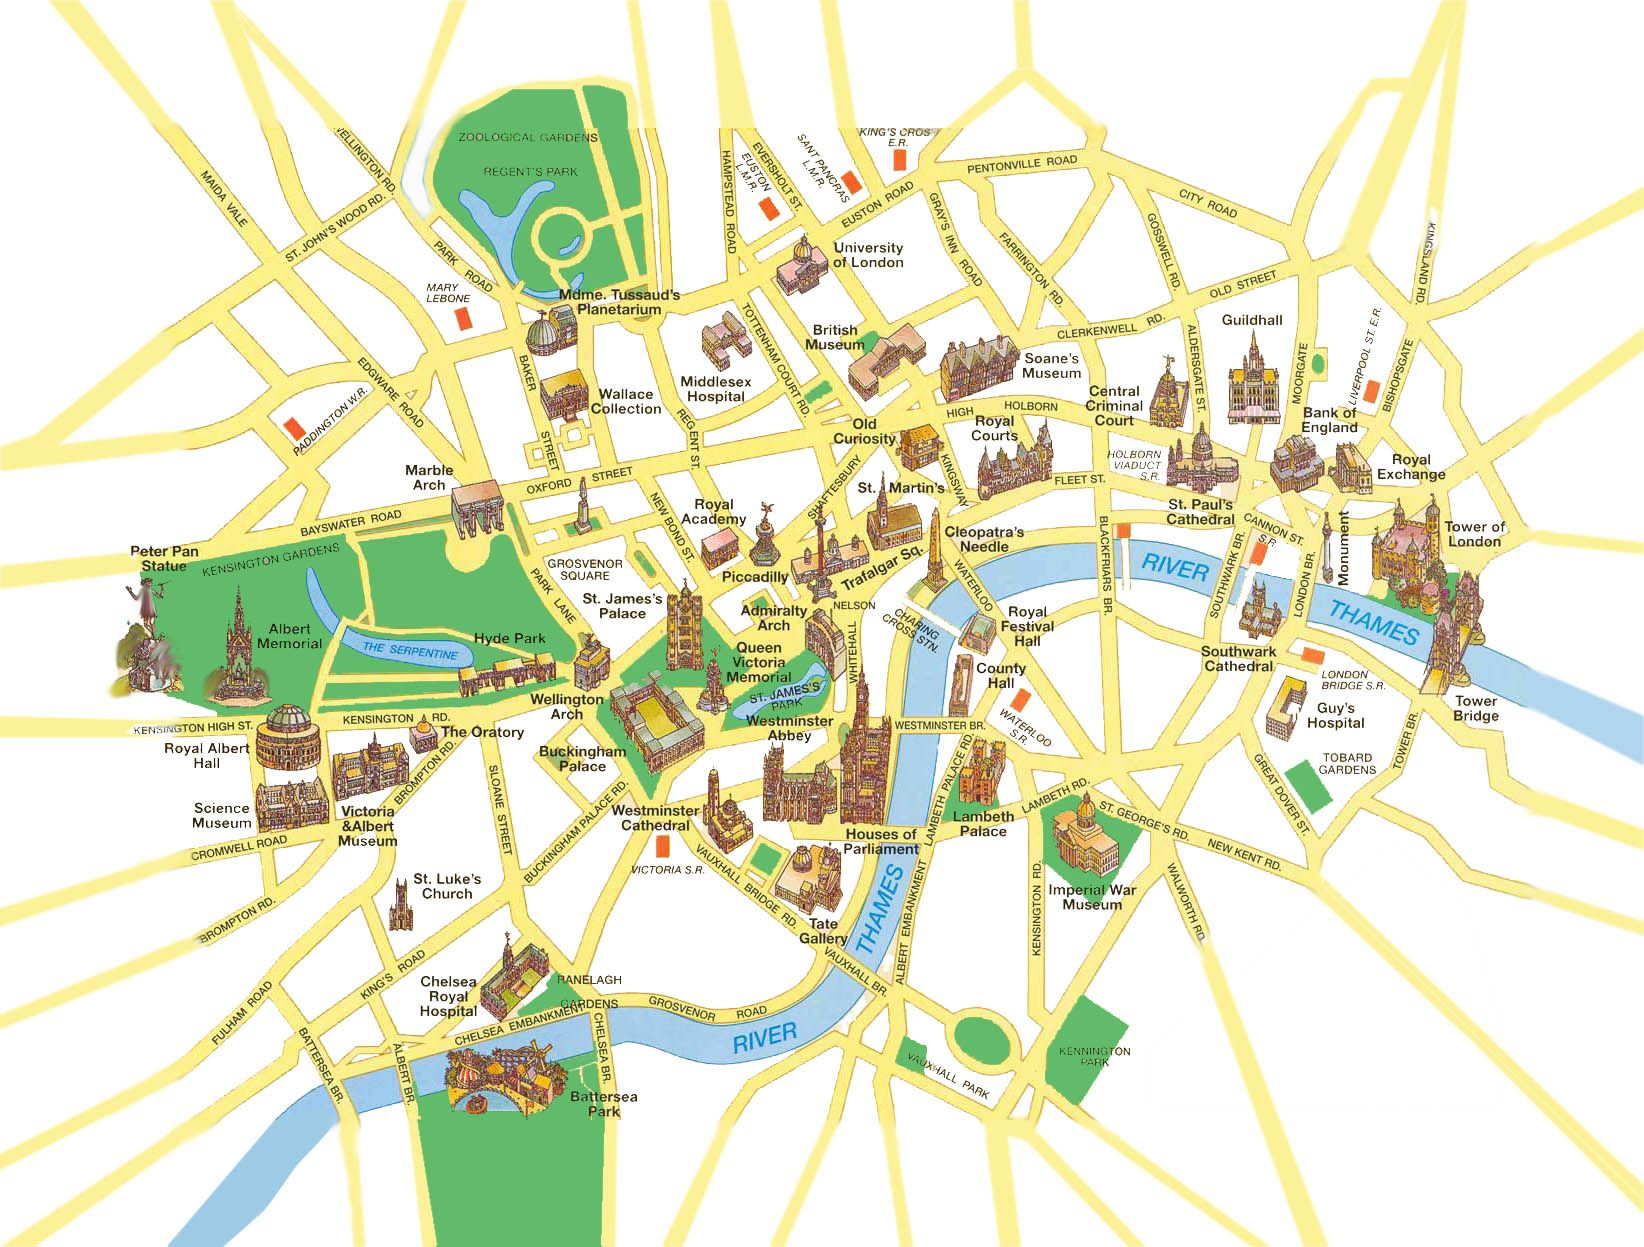 Paris top tourist attractions map Landmarks aerial birds eye view – Map Of Central London With Tourist Attractions